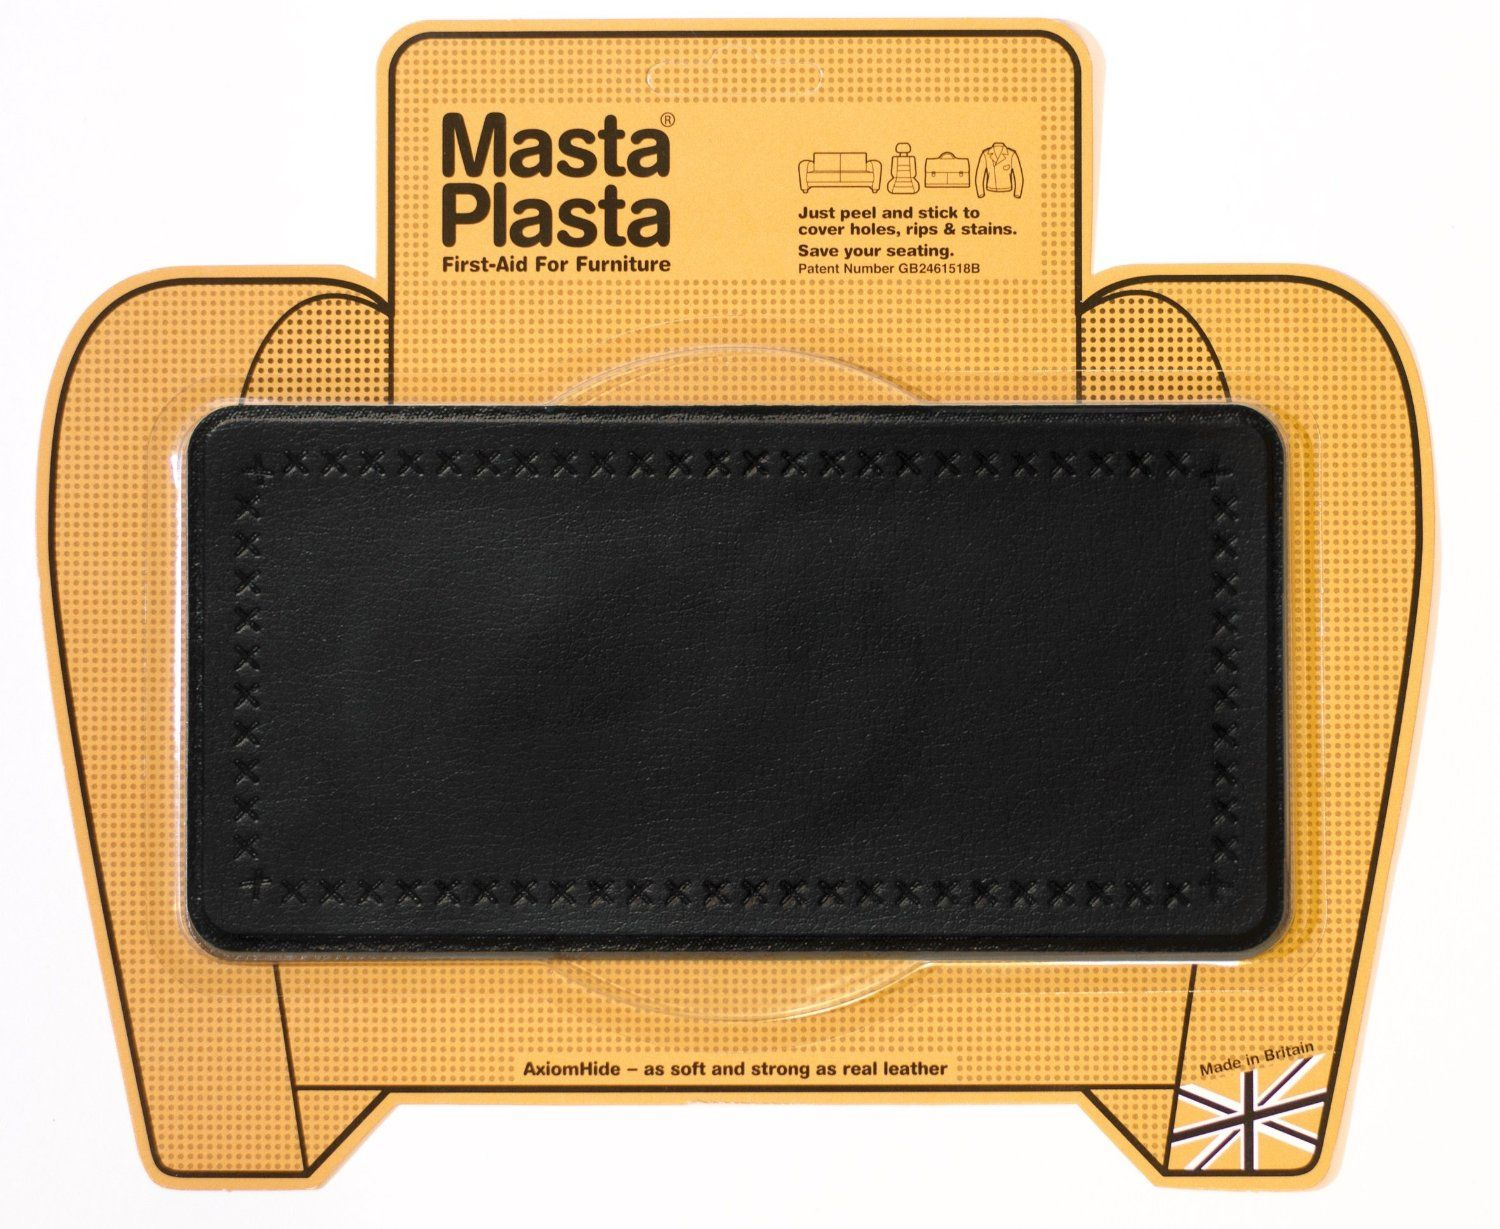 MASTAPLASTA peel and stick repair patch for holes, rips and stains in car seats, sofas, bags and leather jackets. Leather repair - easy, cheap and looks great - no one will ever know you're hiding a hole or stain.